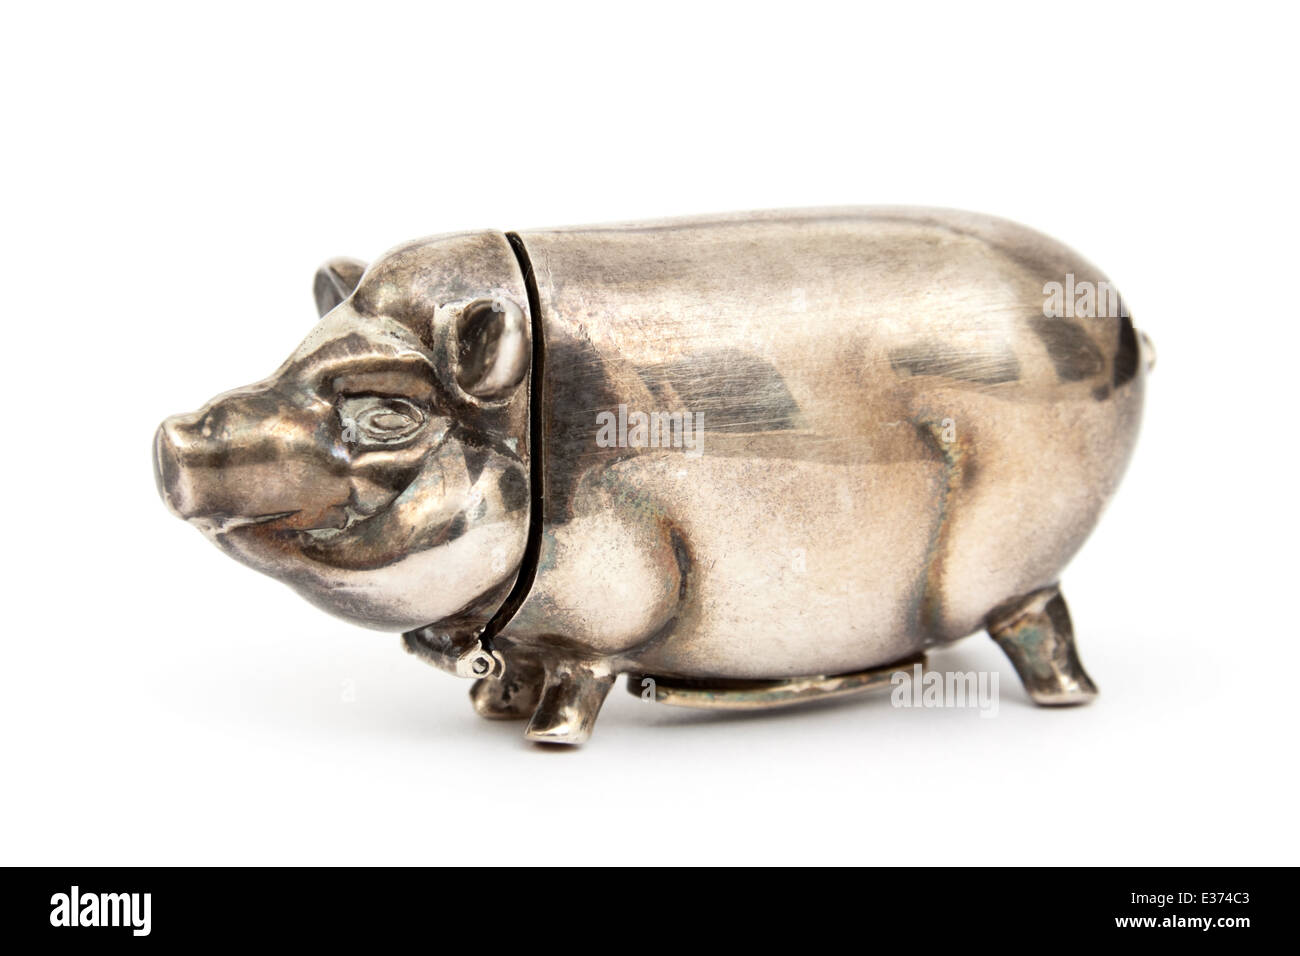 Pre-WW2 Continental Silver Pig Vesta (French or German) for storing matches, with the striker on the pig's belly. - Stock Image